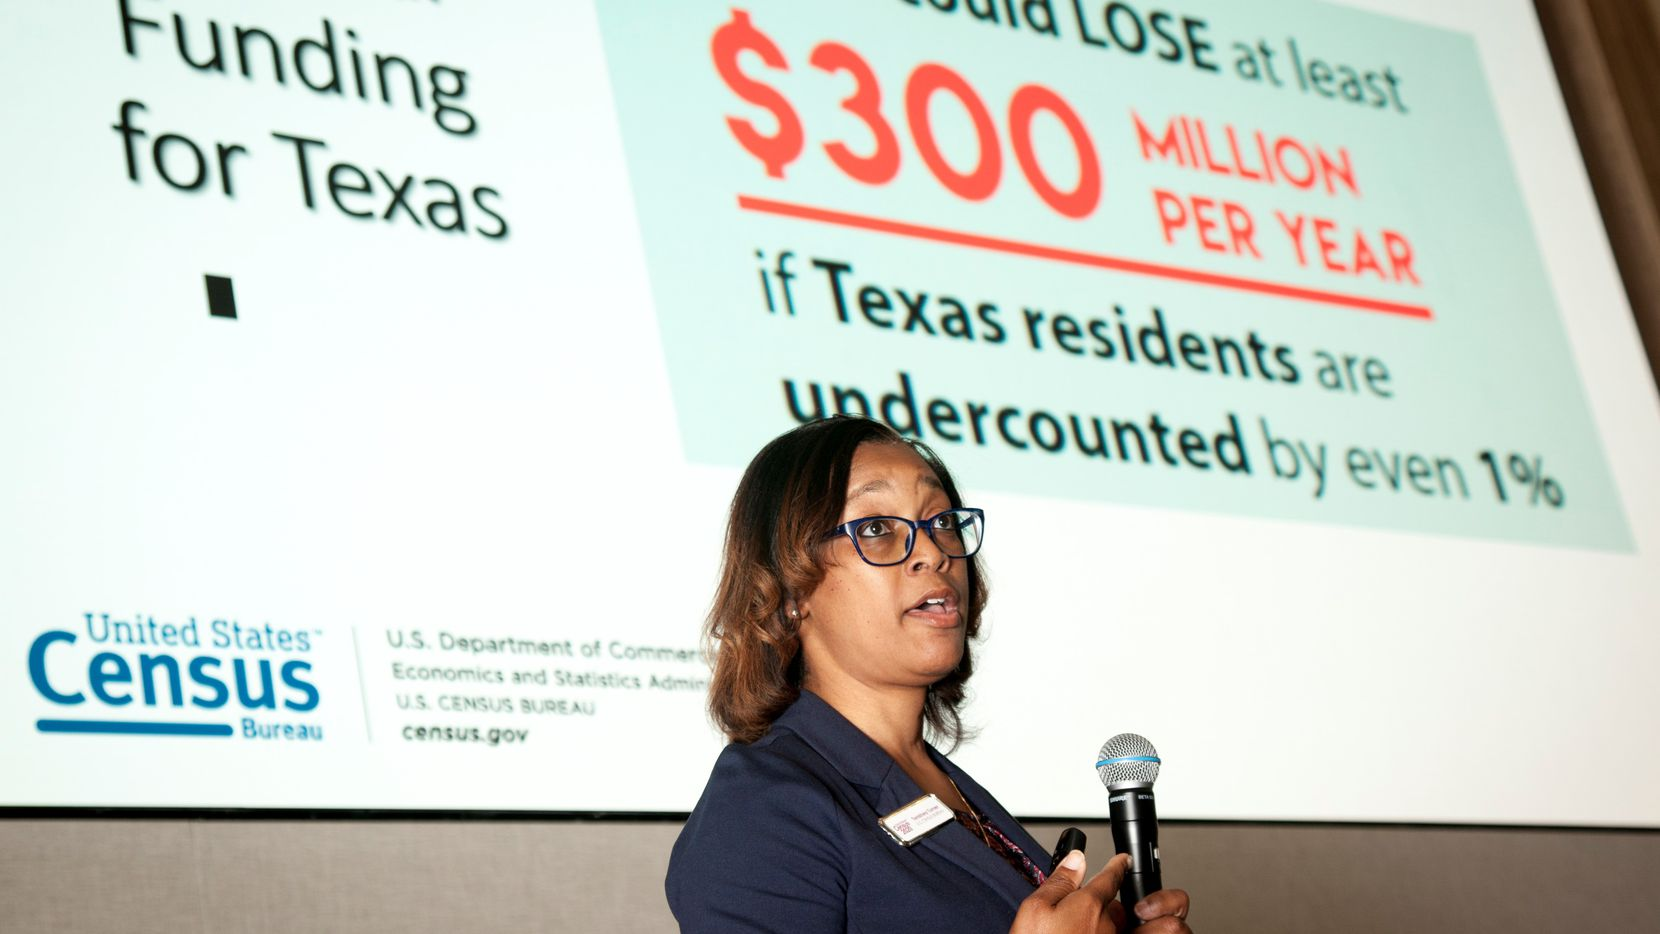 Tenishea Turner, a partnership specialist with the U.S. Census Bureau, speaks to 75 area nonprofits at a February census workshop at Capital One's Plano campus. The Collin County Business Alliance (CCBA) and Communities Foundation of Texas (CFT) hosted the event.